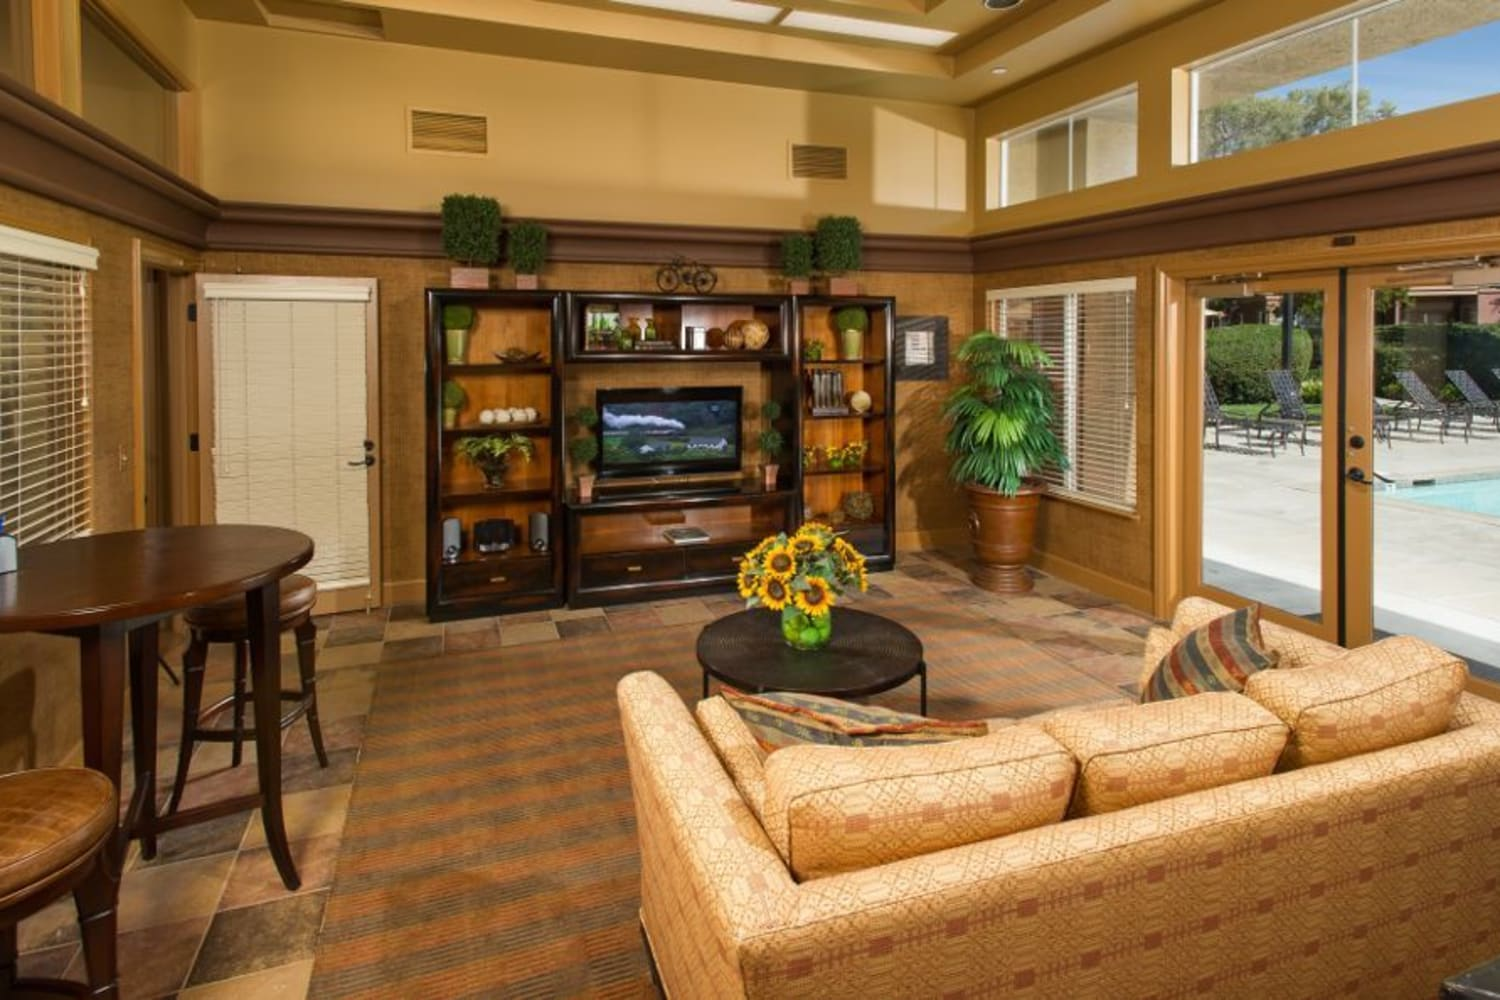 Enjoy a welcoming clubhouse at La Vina Apartments in Livermore, California